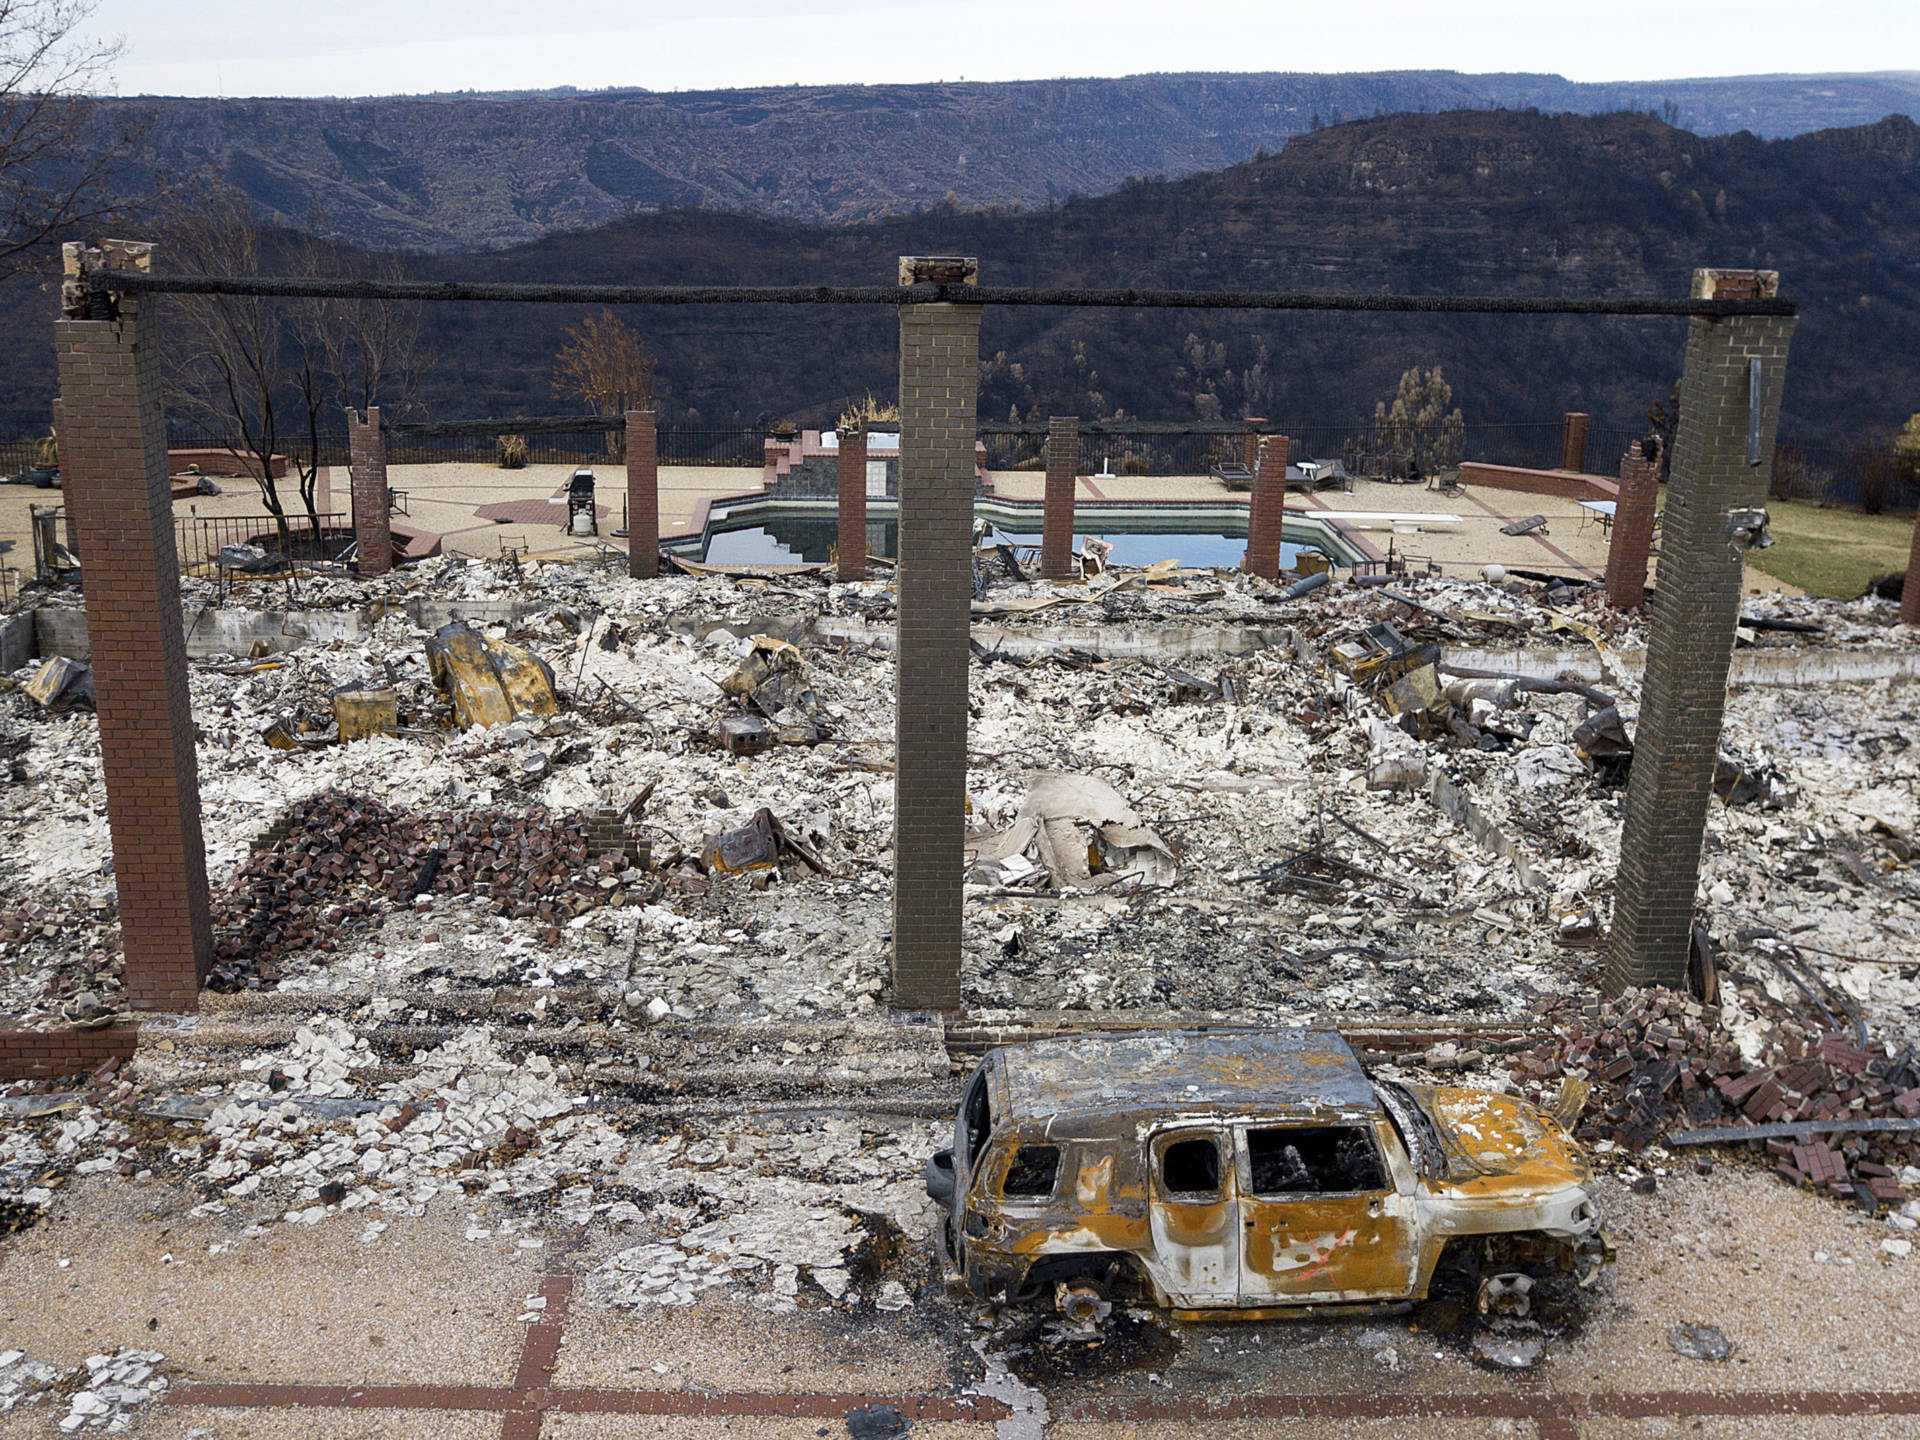 A vehicle rests in front of a home leveled by the Camp Fire in Paradise, in a photo from December. Pacific Gas & Electric has said it's 'probable' investigators will conclude its equipment ignited the November 2018 catastrophe. Noah Berger/AP